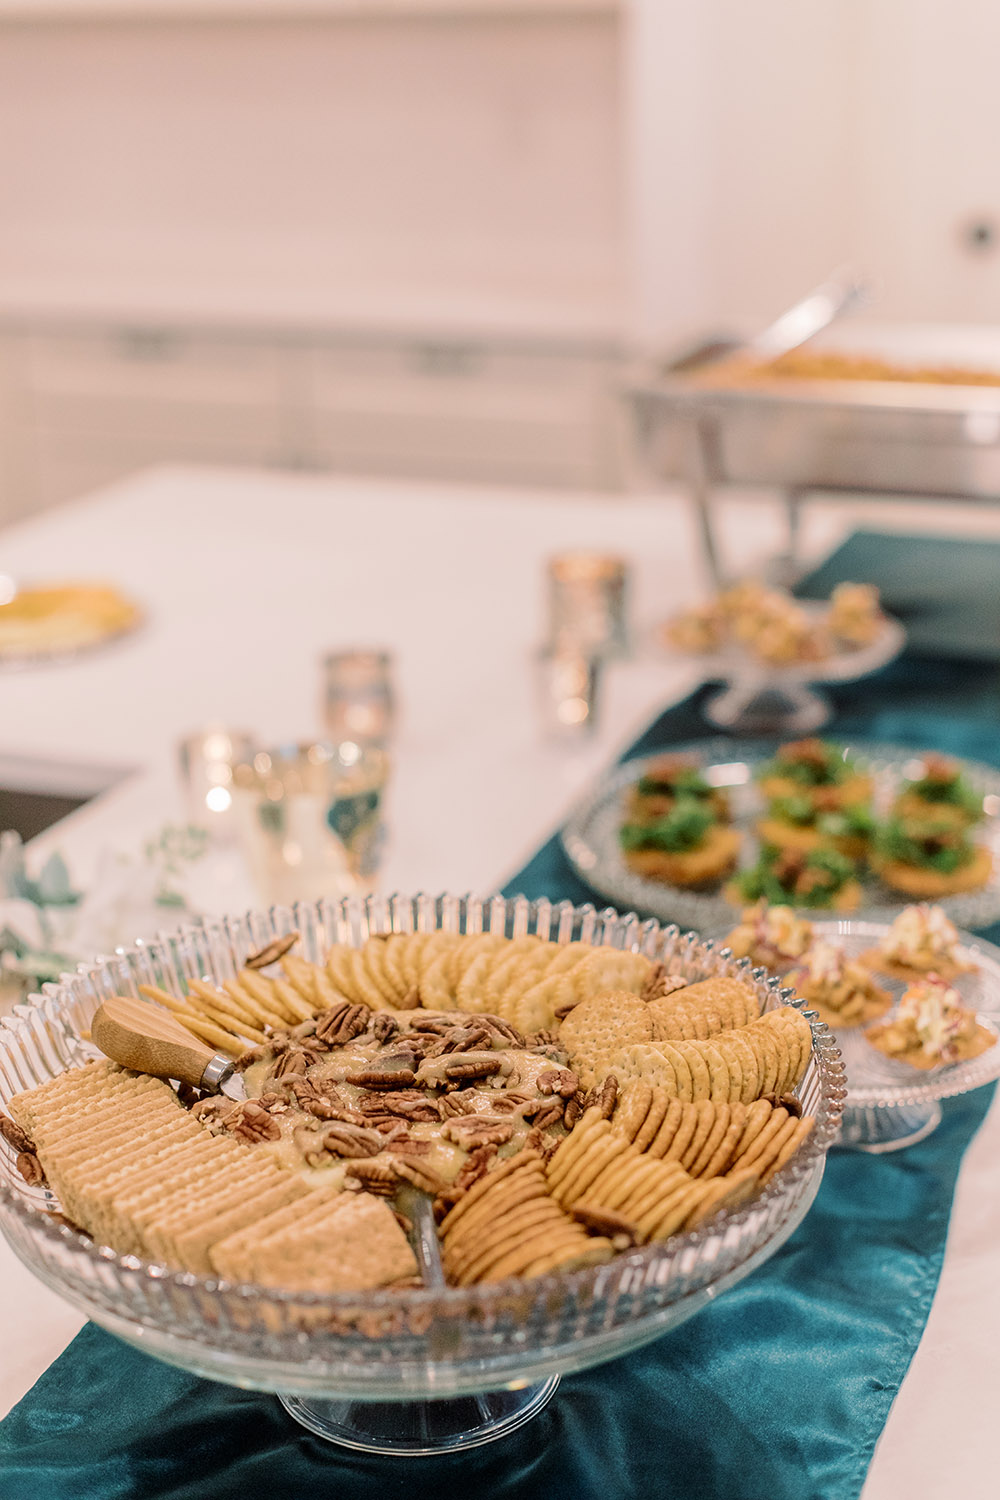 Brie and crackers display. Photo: Ashley Kristen Photography